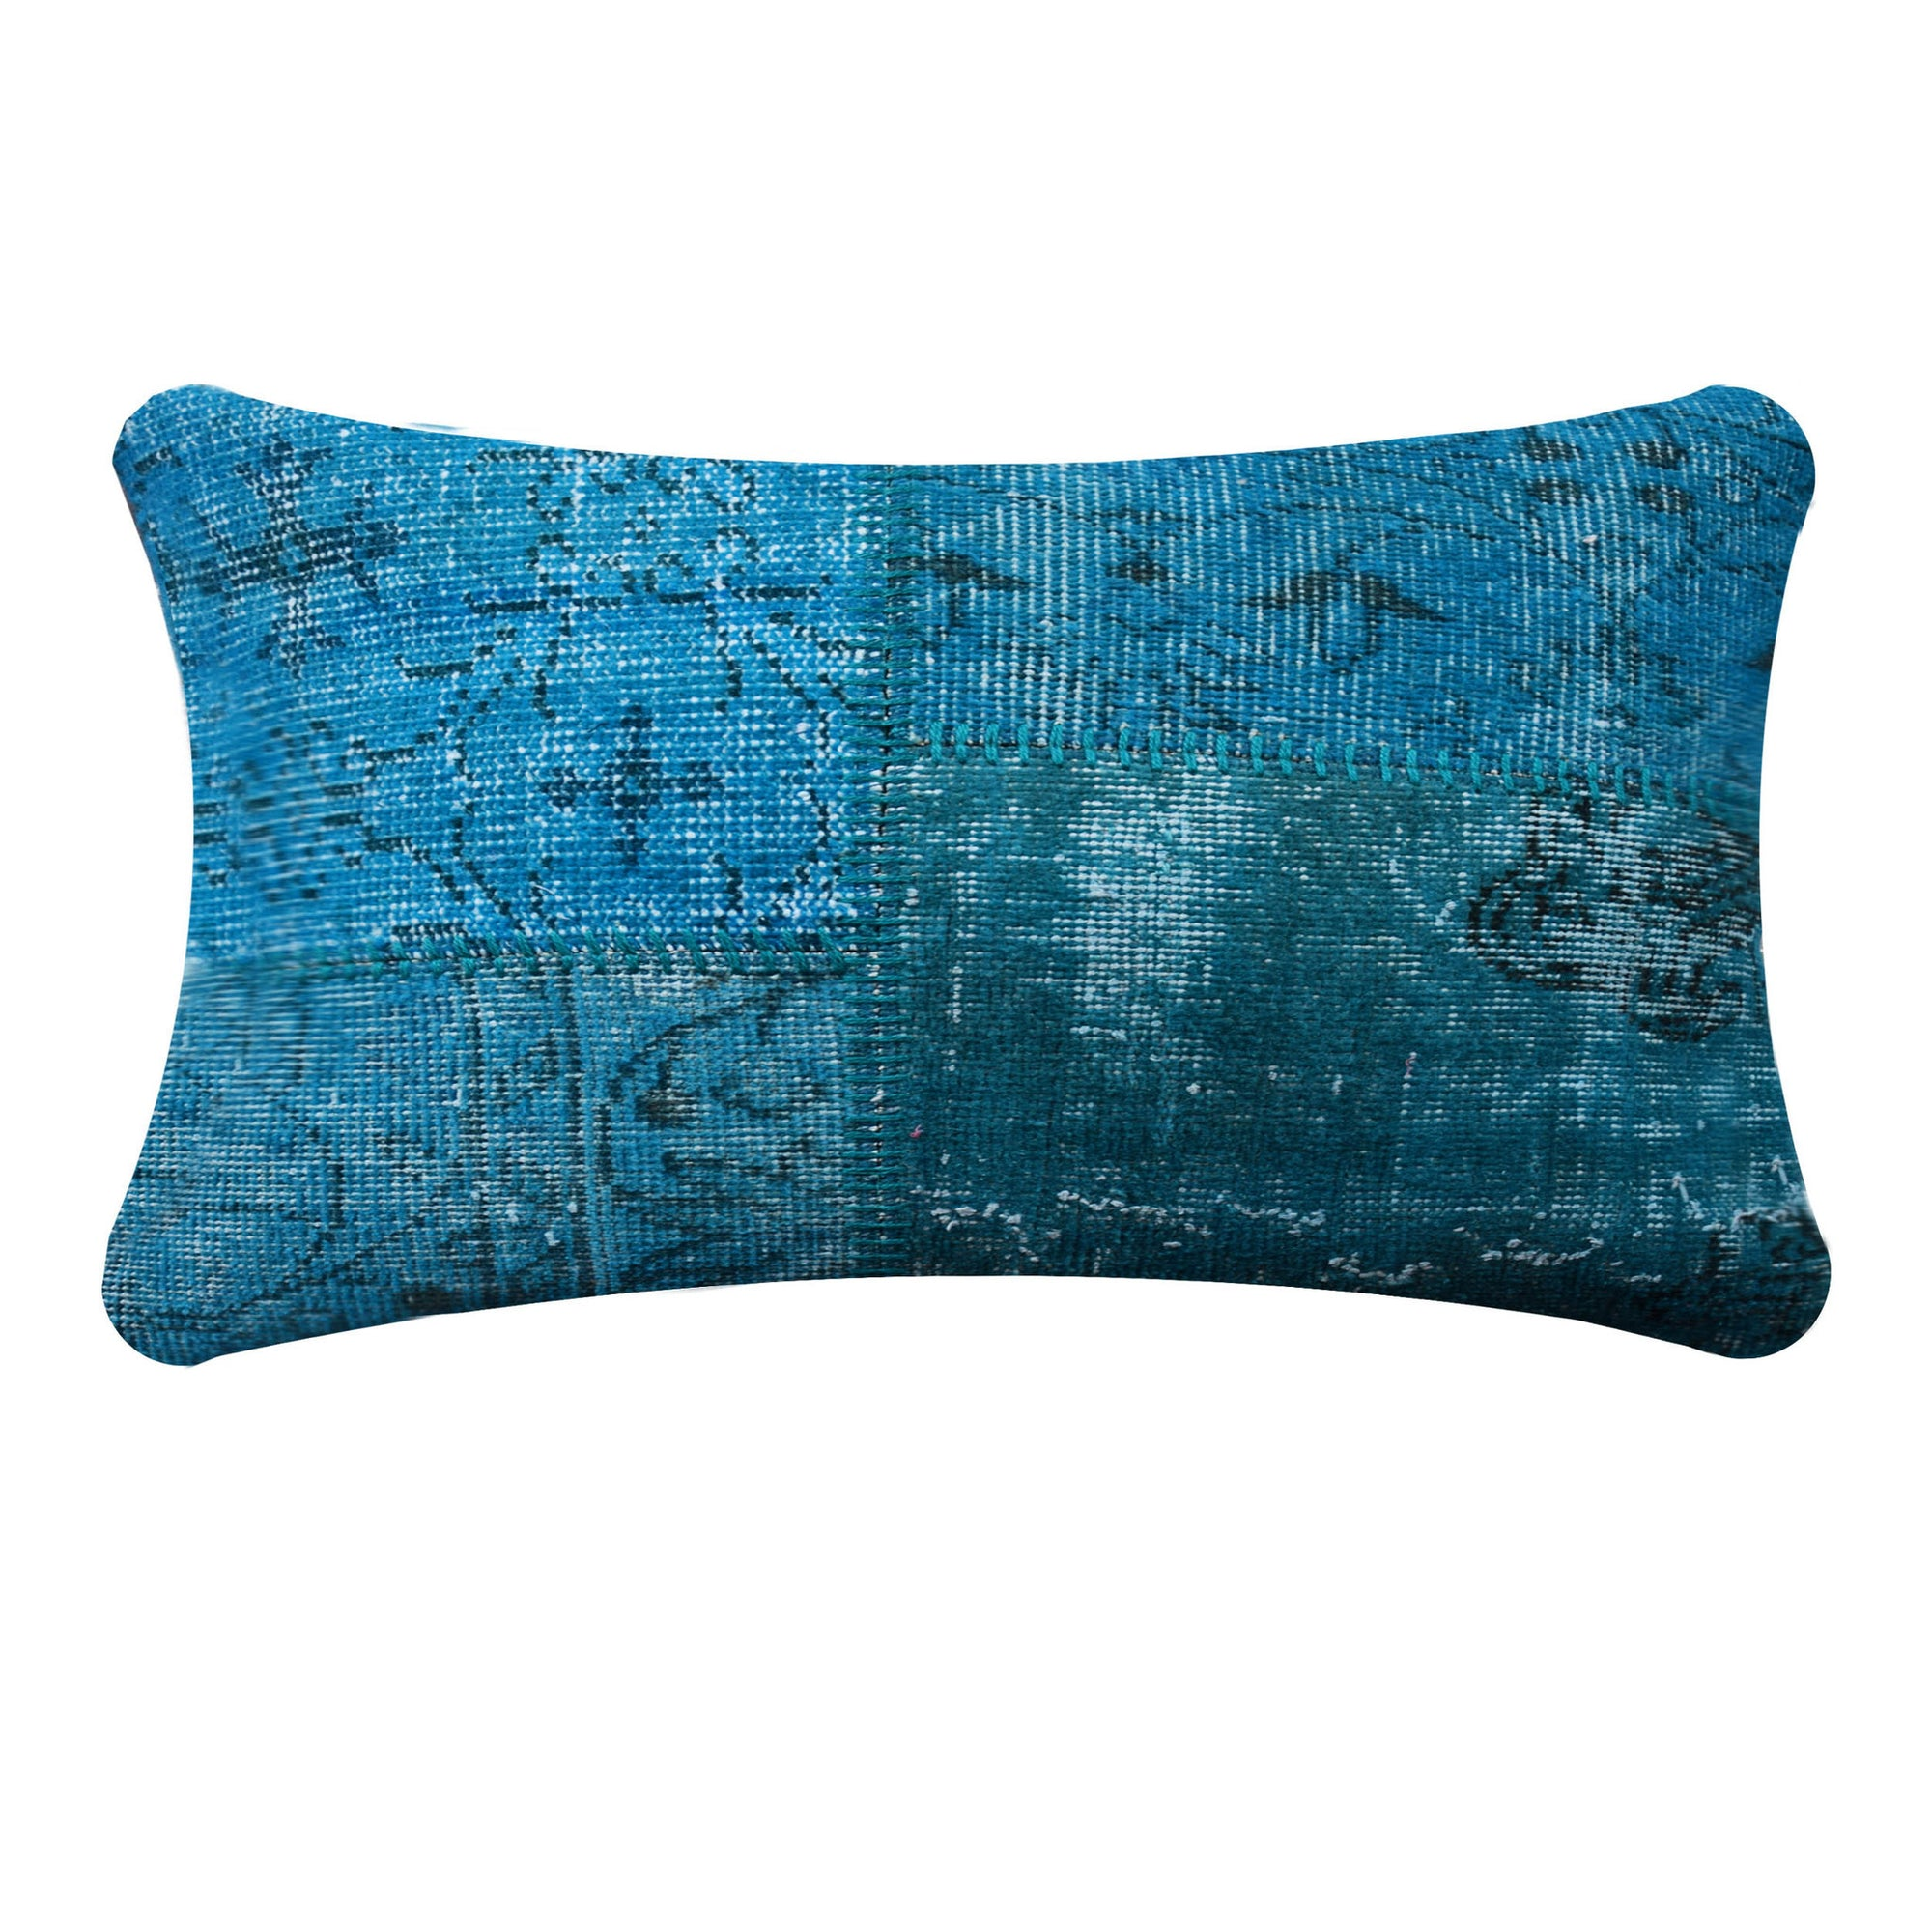 BURSA HANDMADE OVER DYED CUSHION COVER 30X60 SEC0072BS - ebarza